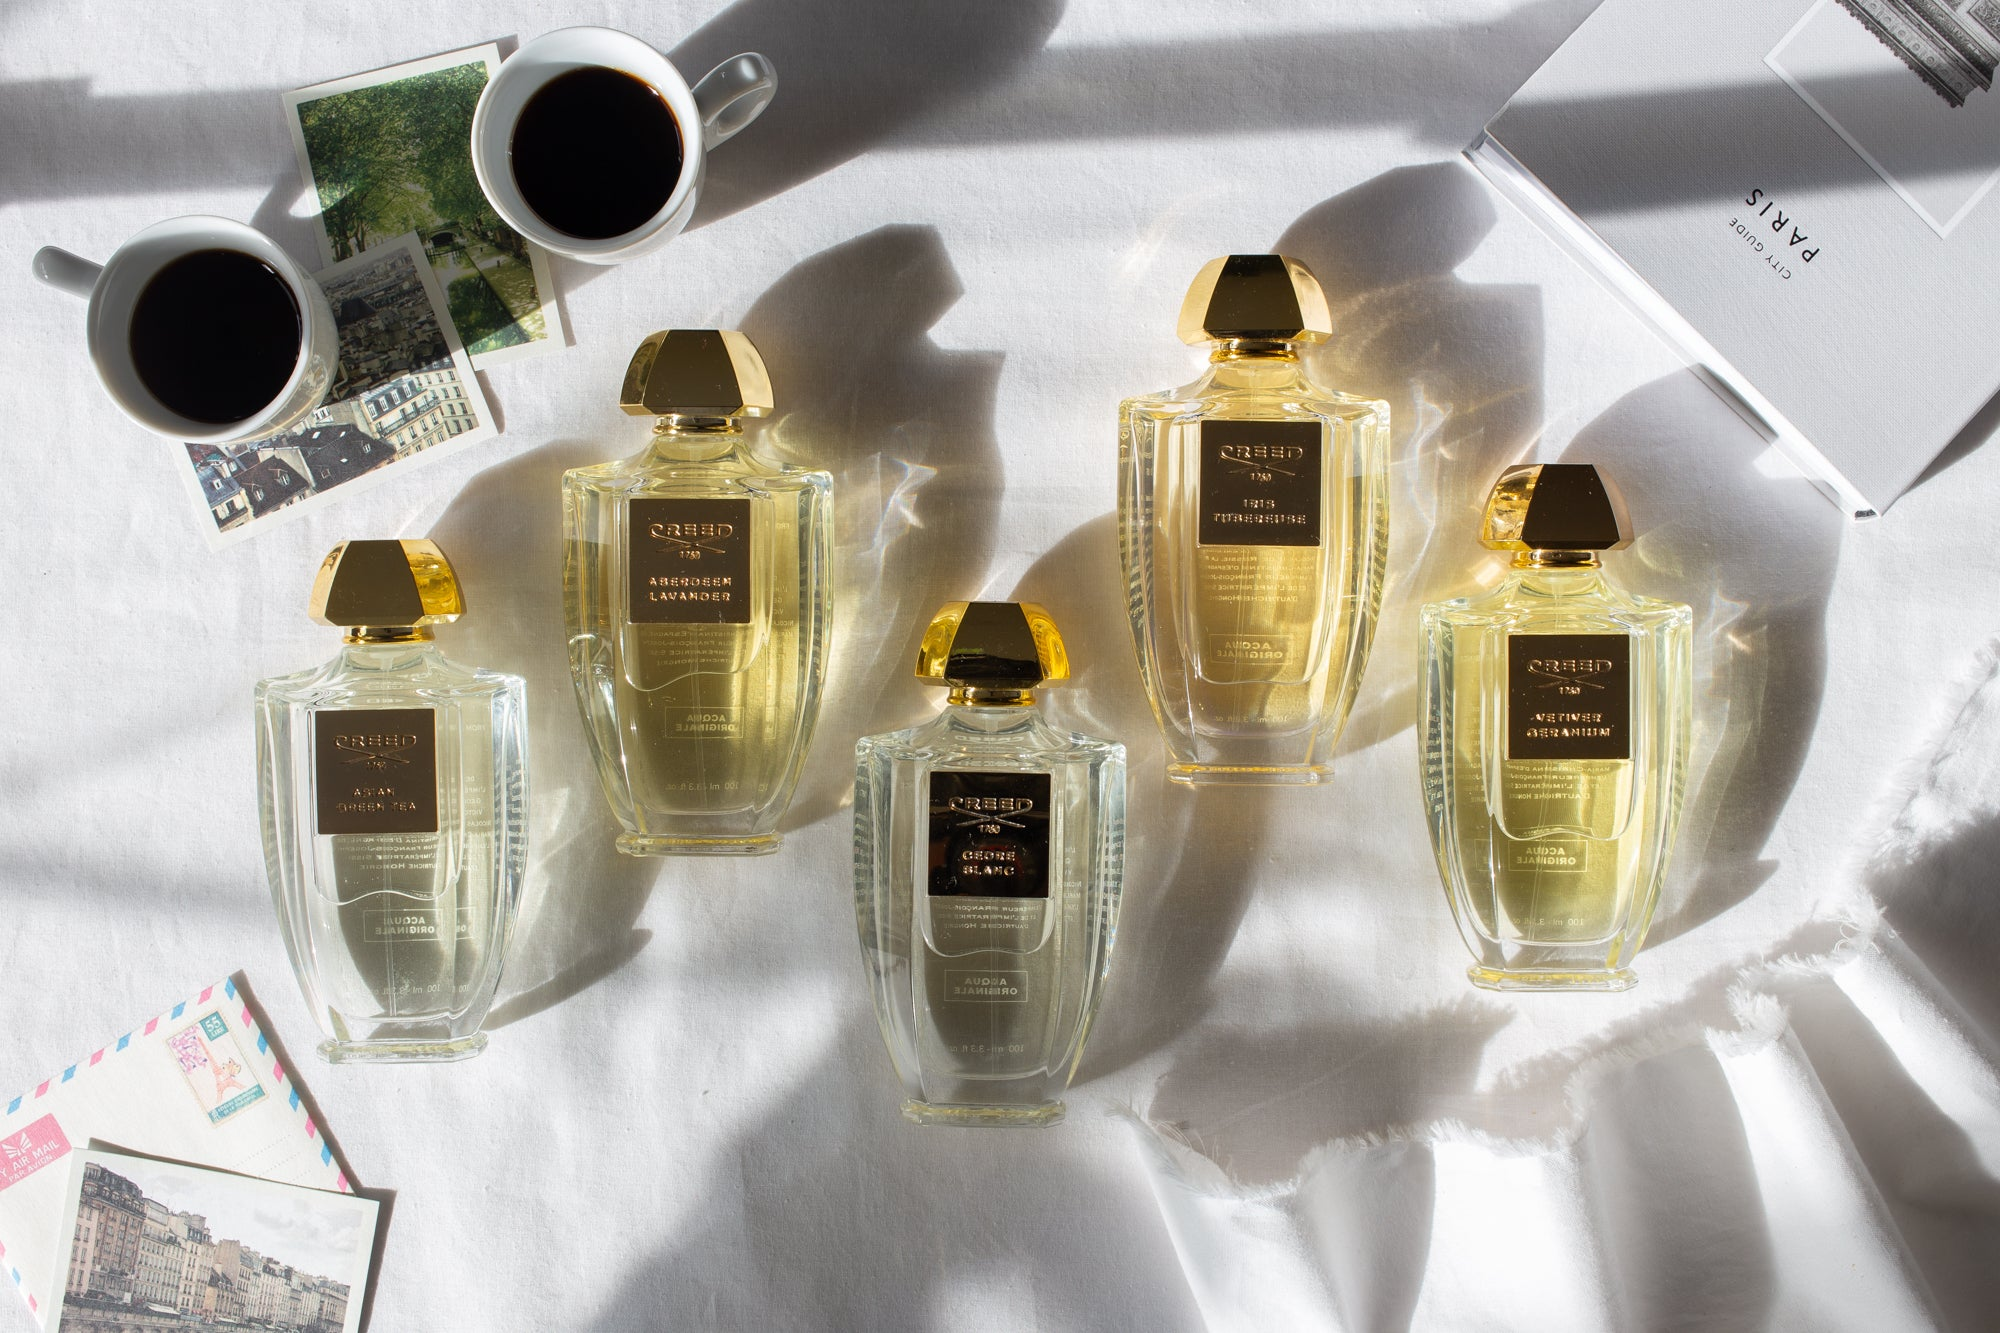 The Acqua Originale Collection: An Escape in a Bottle